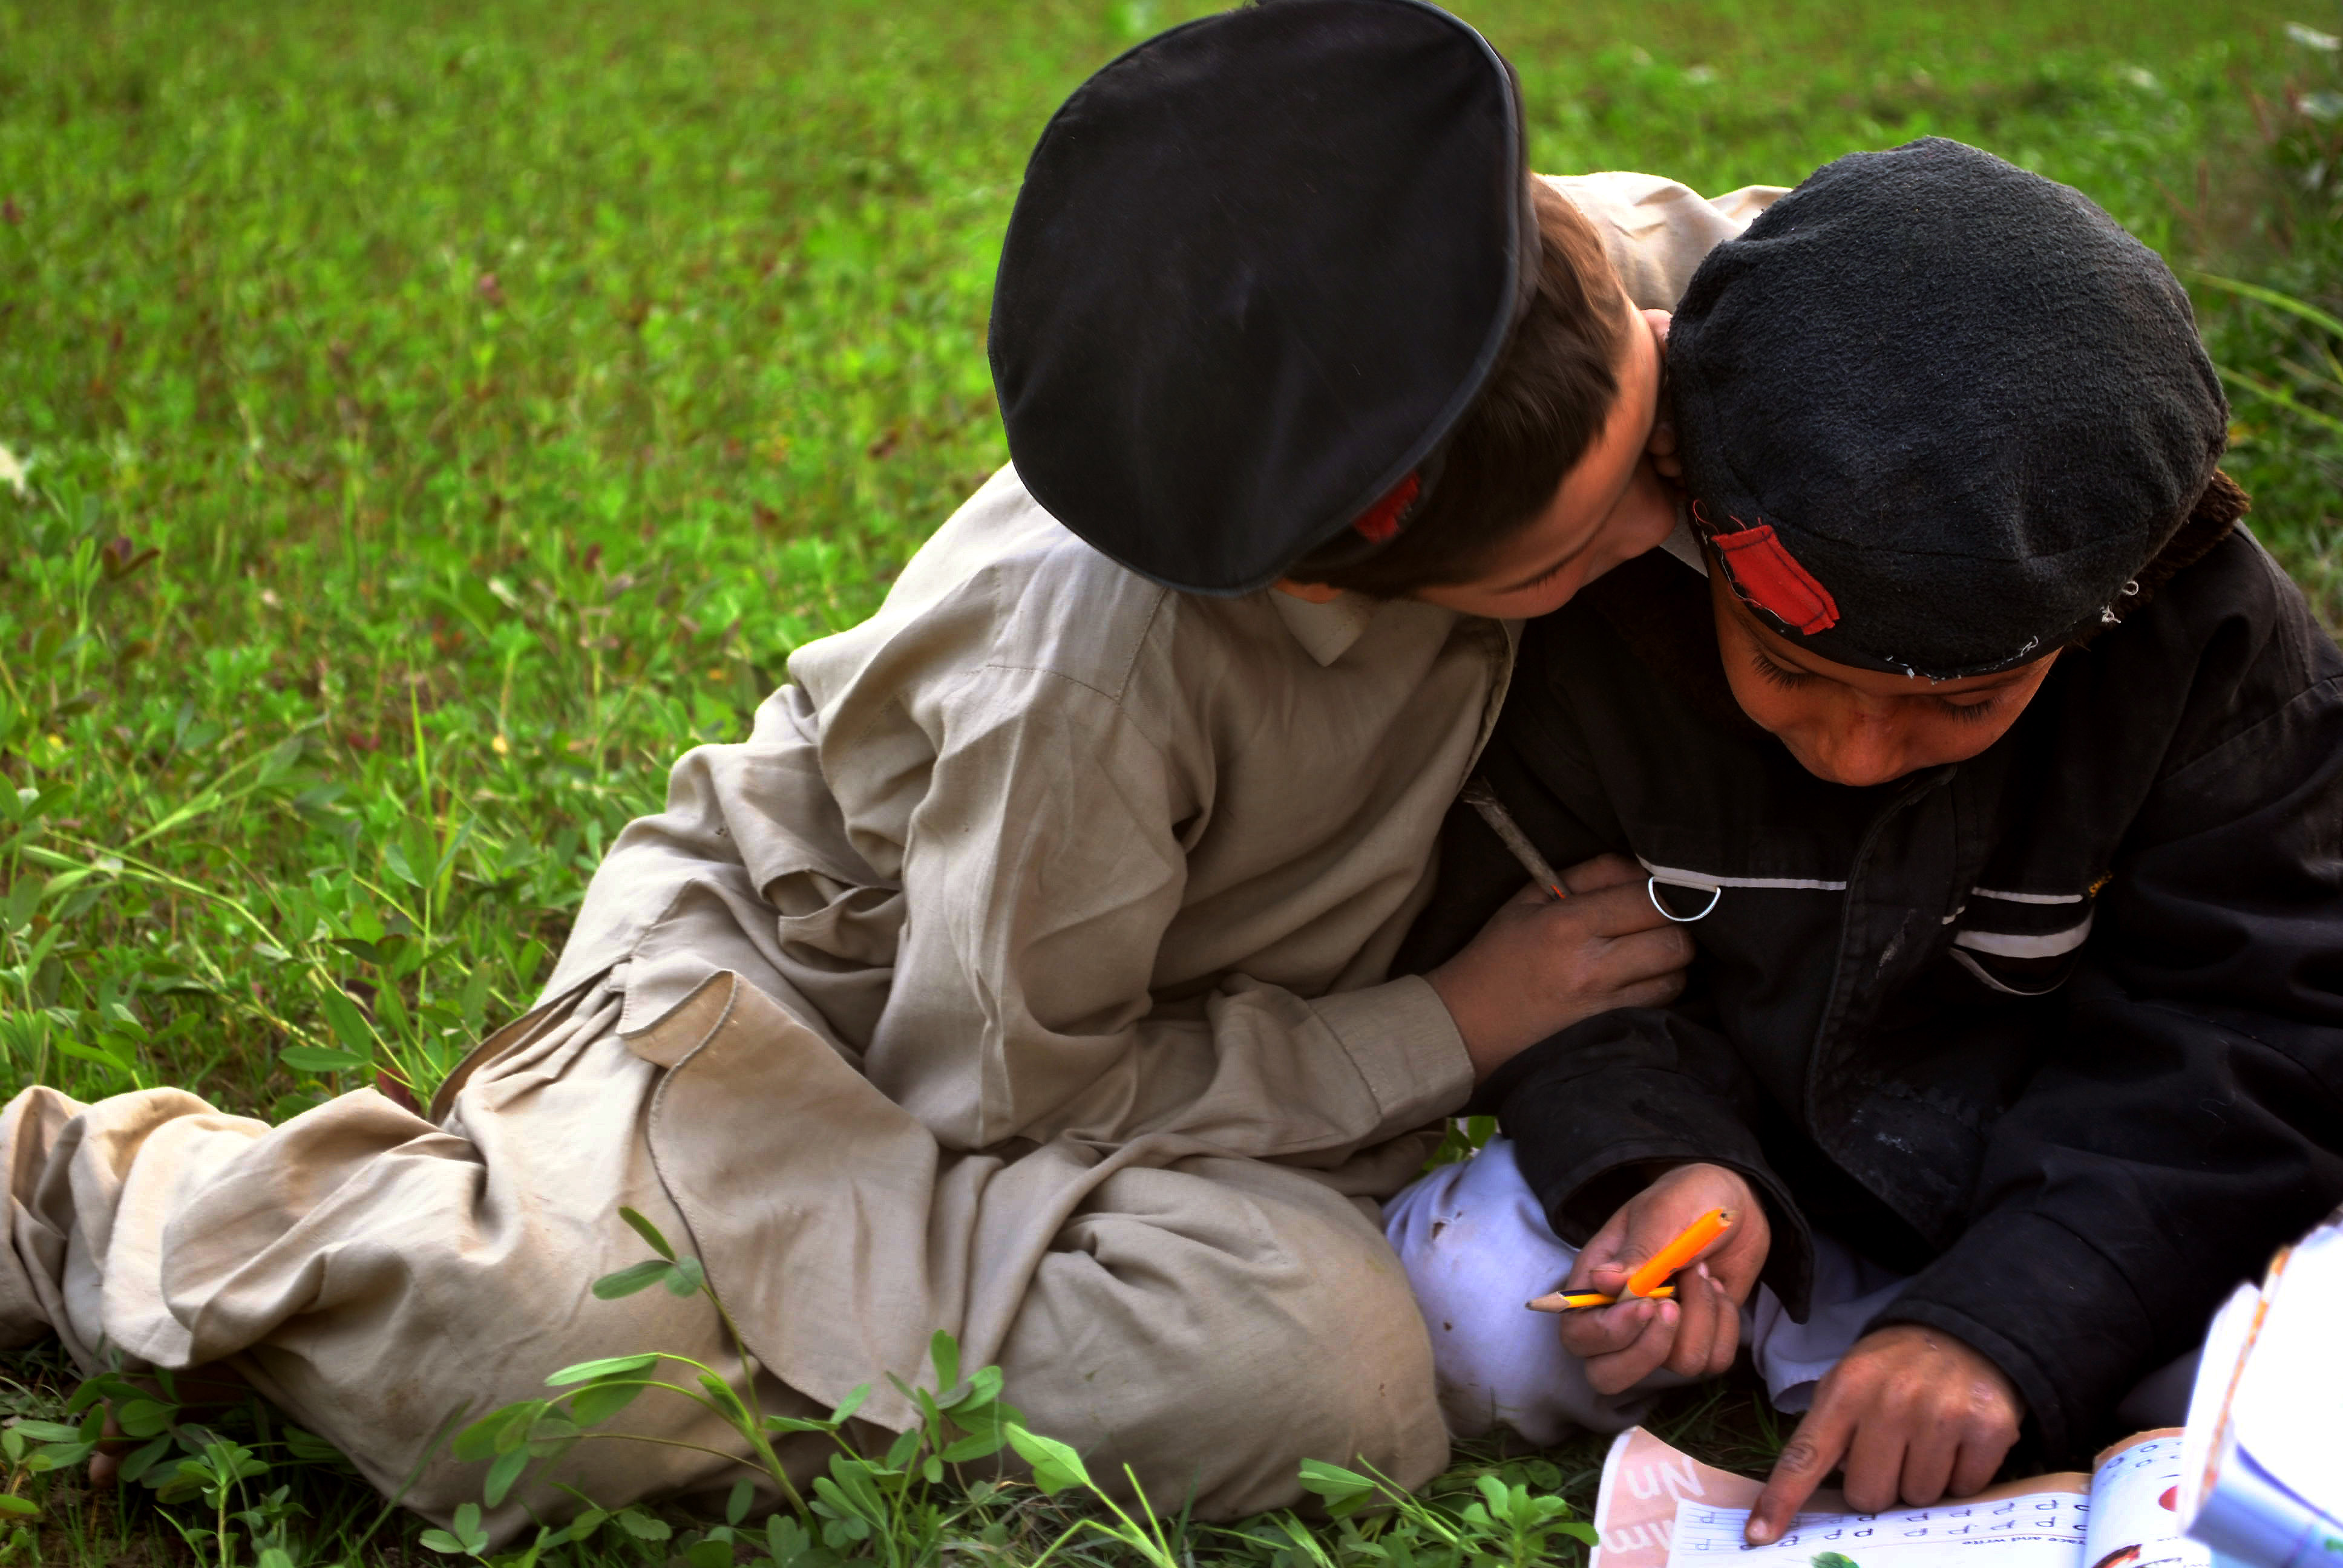 Children work on their homework after school in a village near Peshawar.